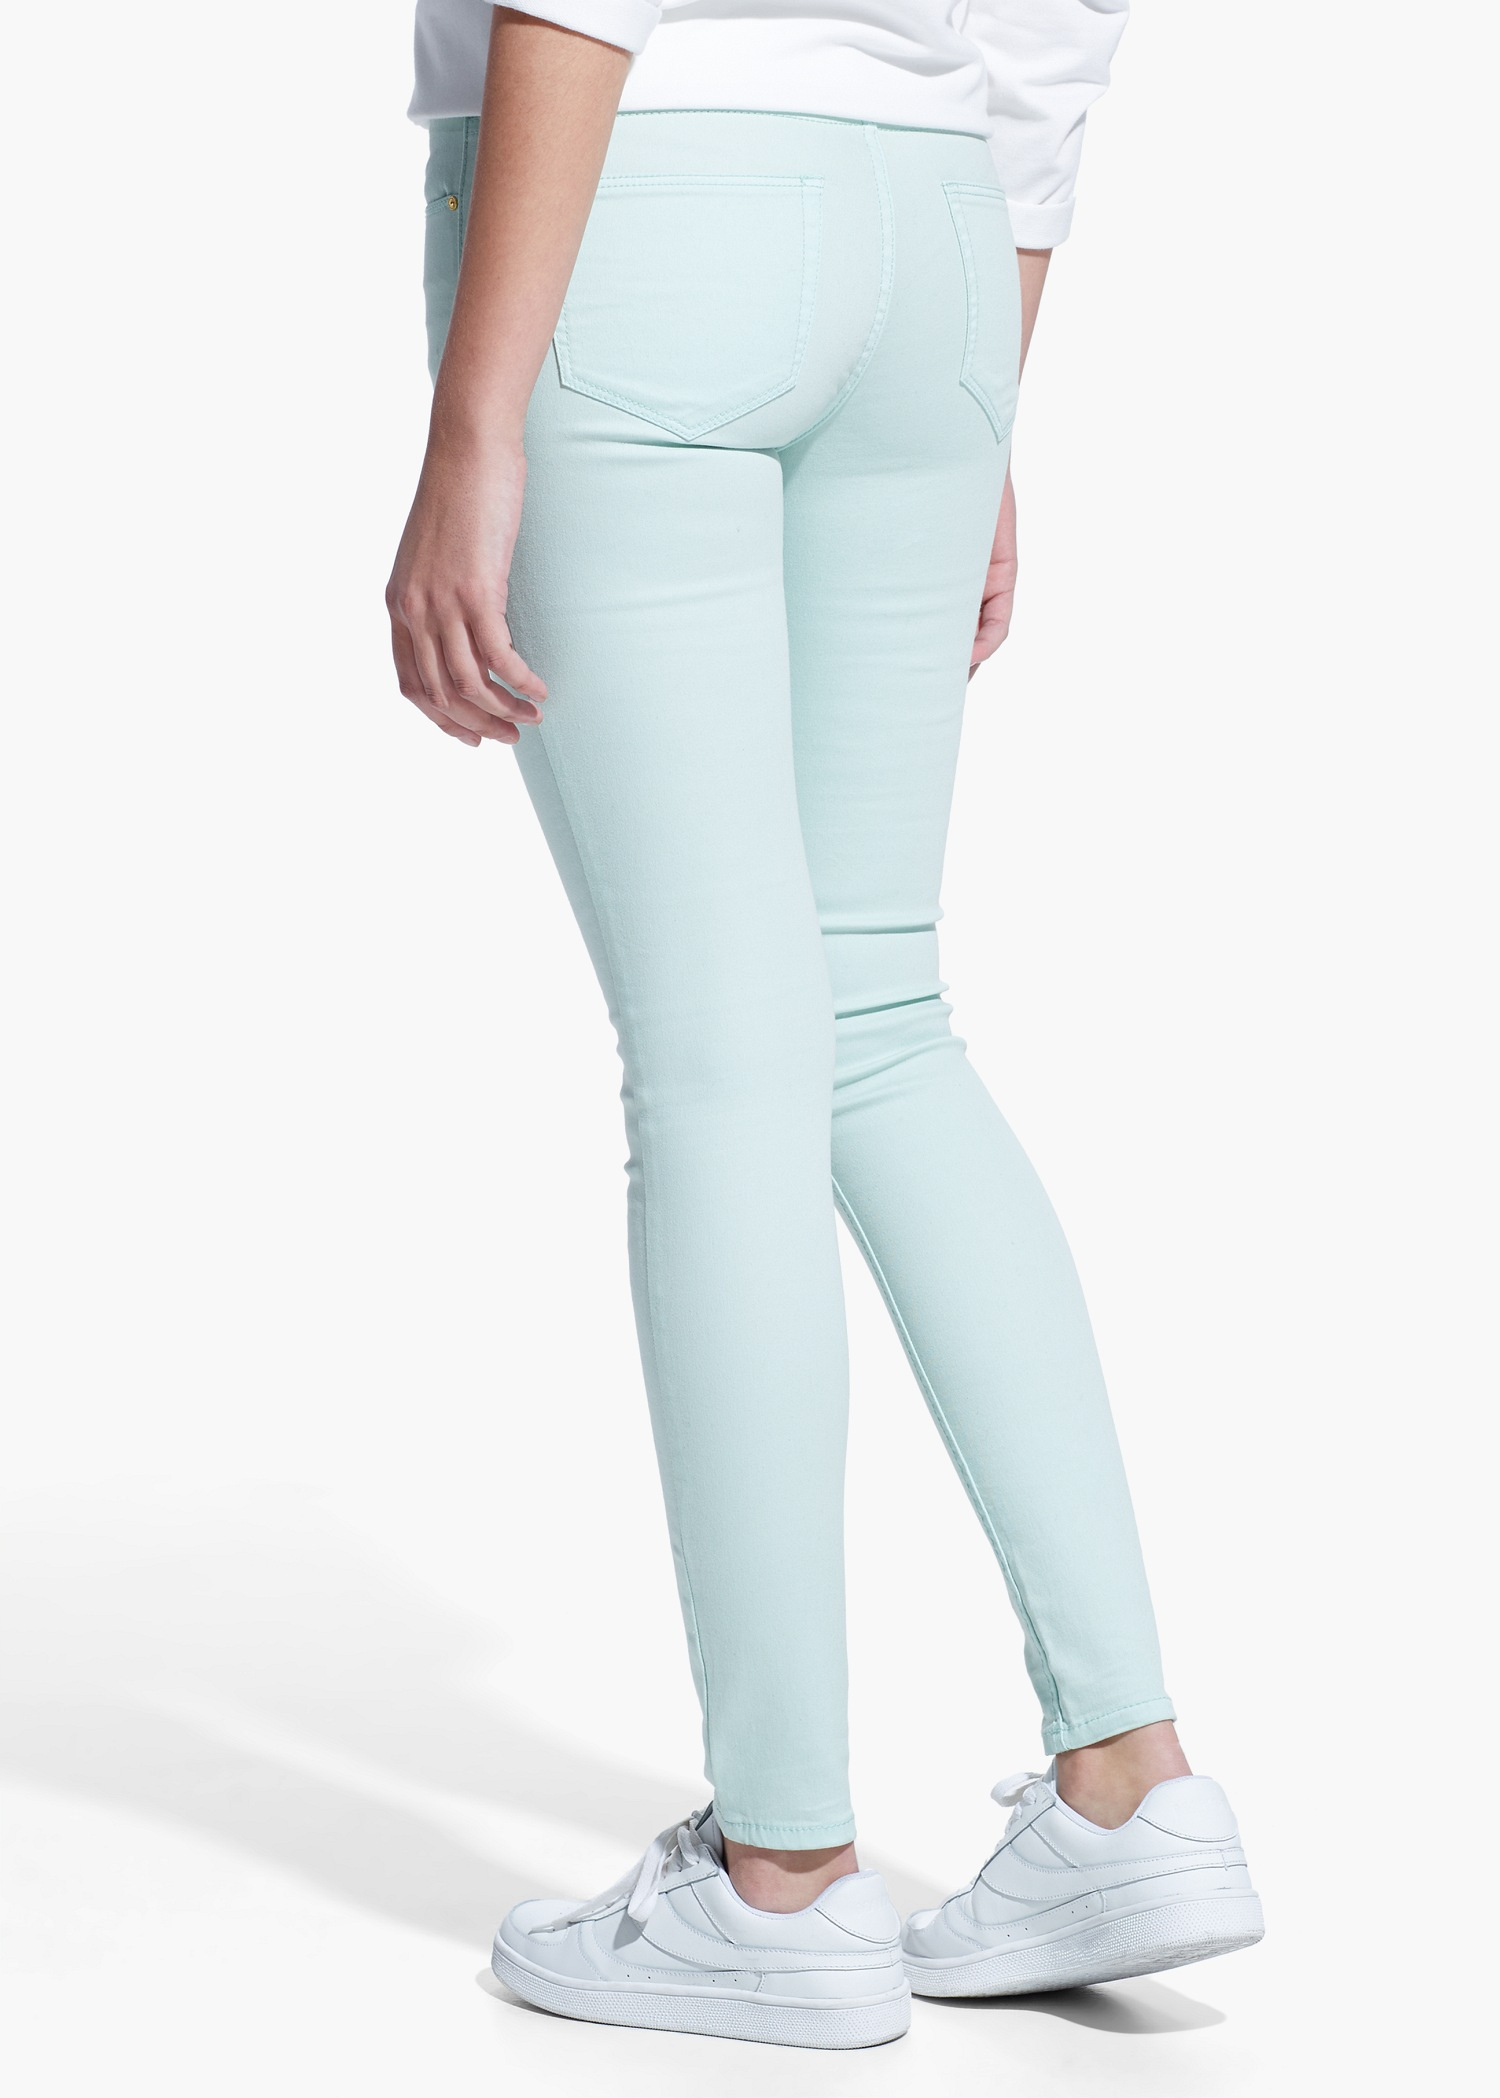 MANGO Skinny Paty jeans Clearance Online Fake Wiki For Sale Clearance Outlet Store Official Site Cheap Price Sale Huge Surprise KpTBkoMR0